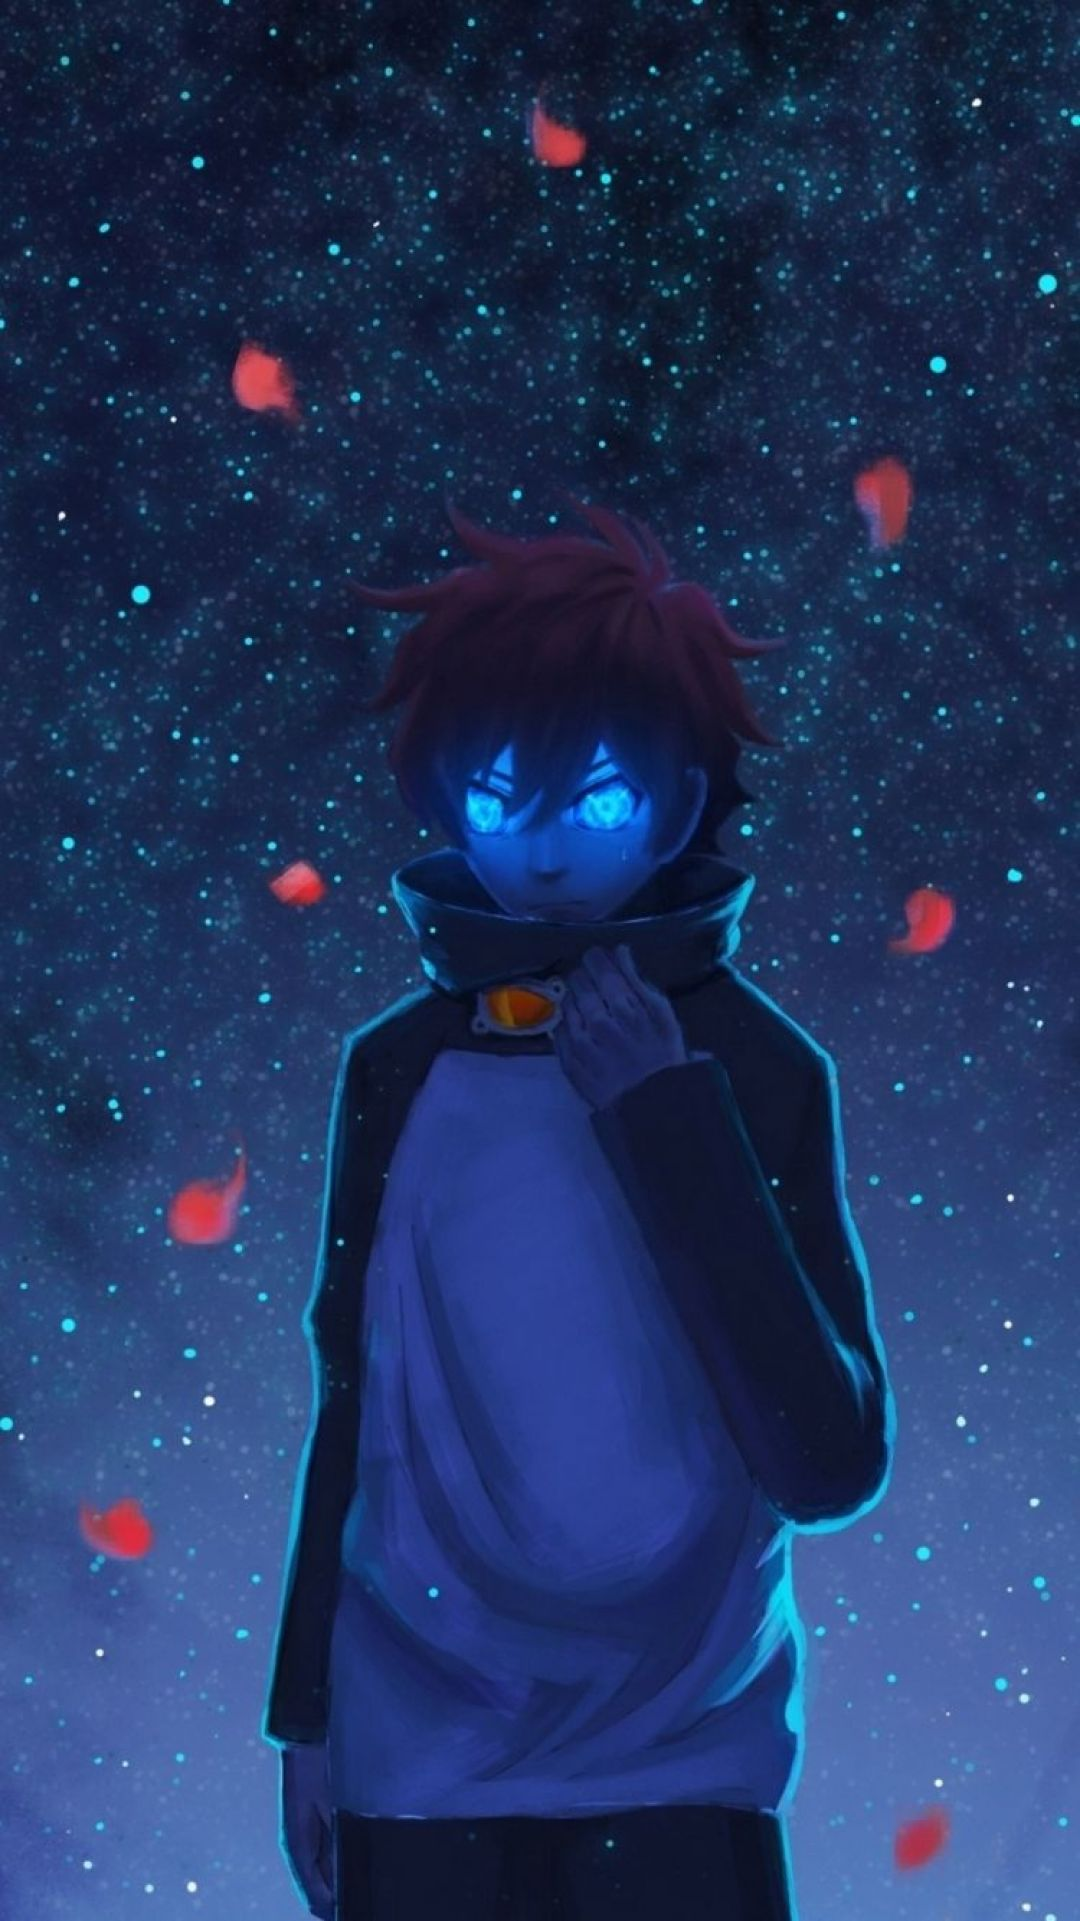 36+ Free Anime Wallpaper For Android Images - Anime Wallpapers